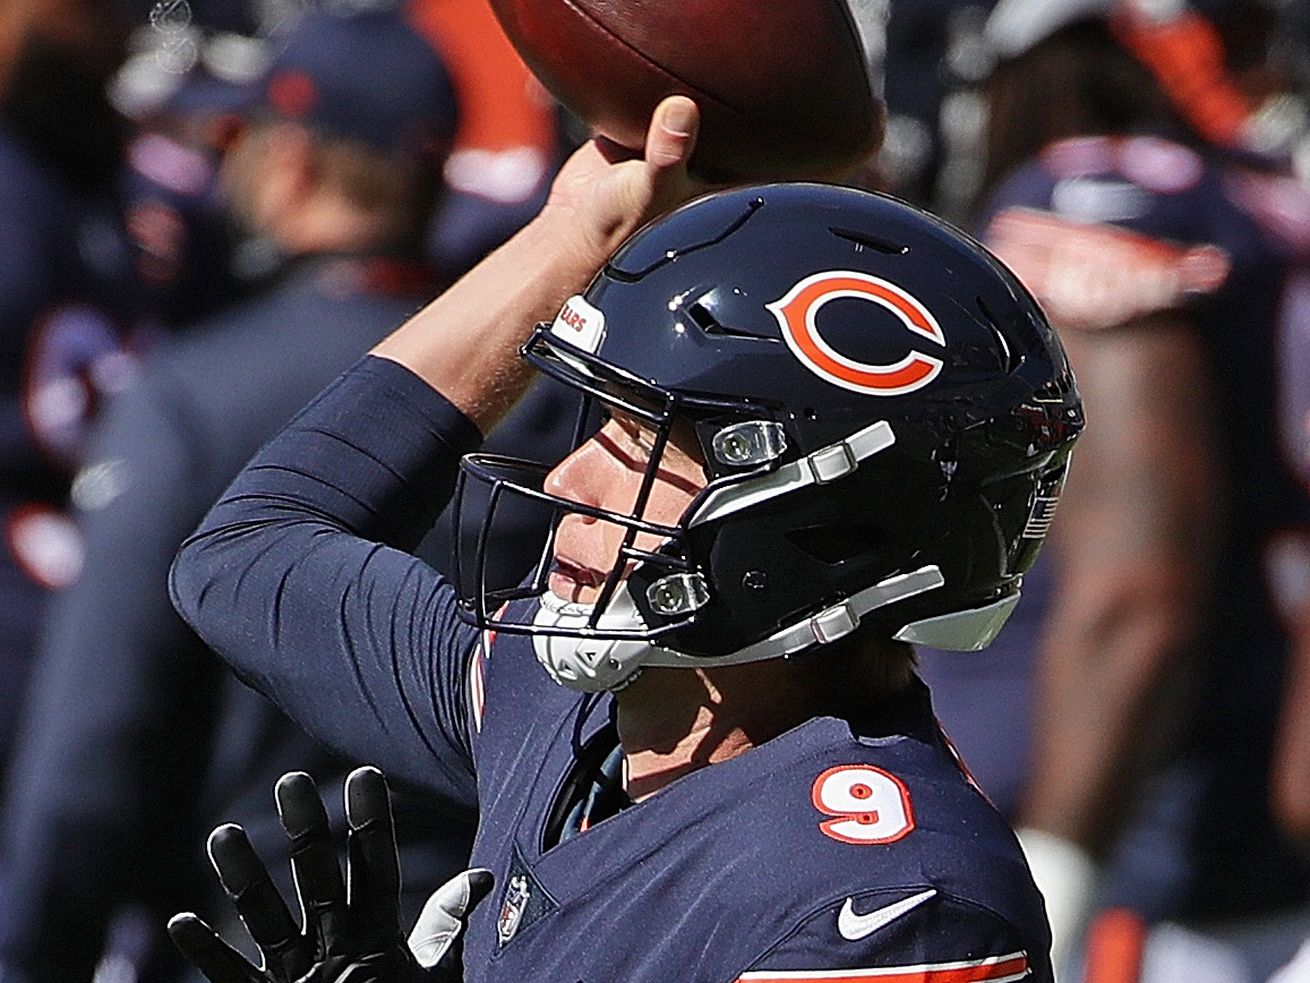 Bears replace QB Mitch Trubisky with Nick Foles